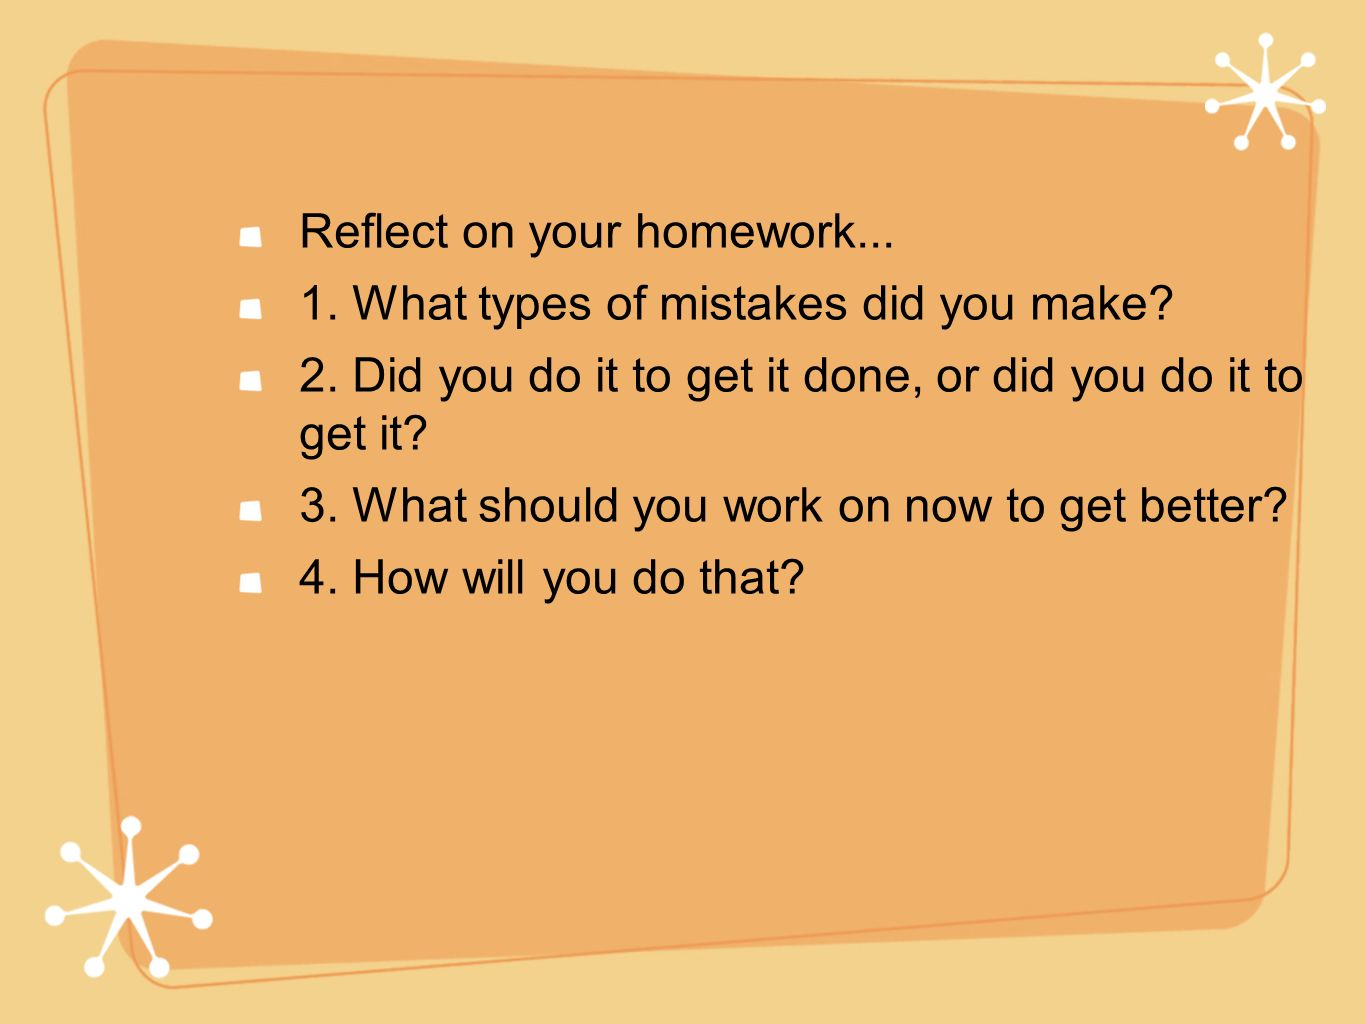 Reflect on your homework...